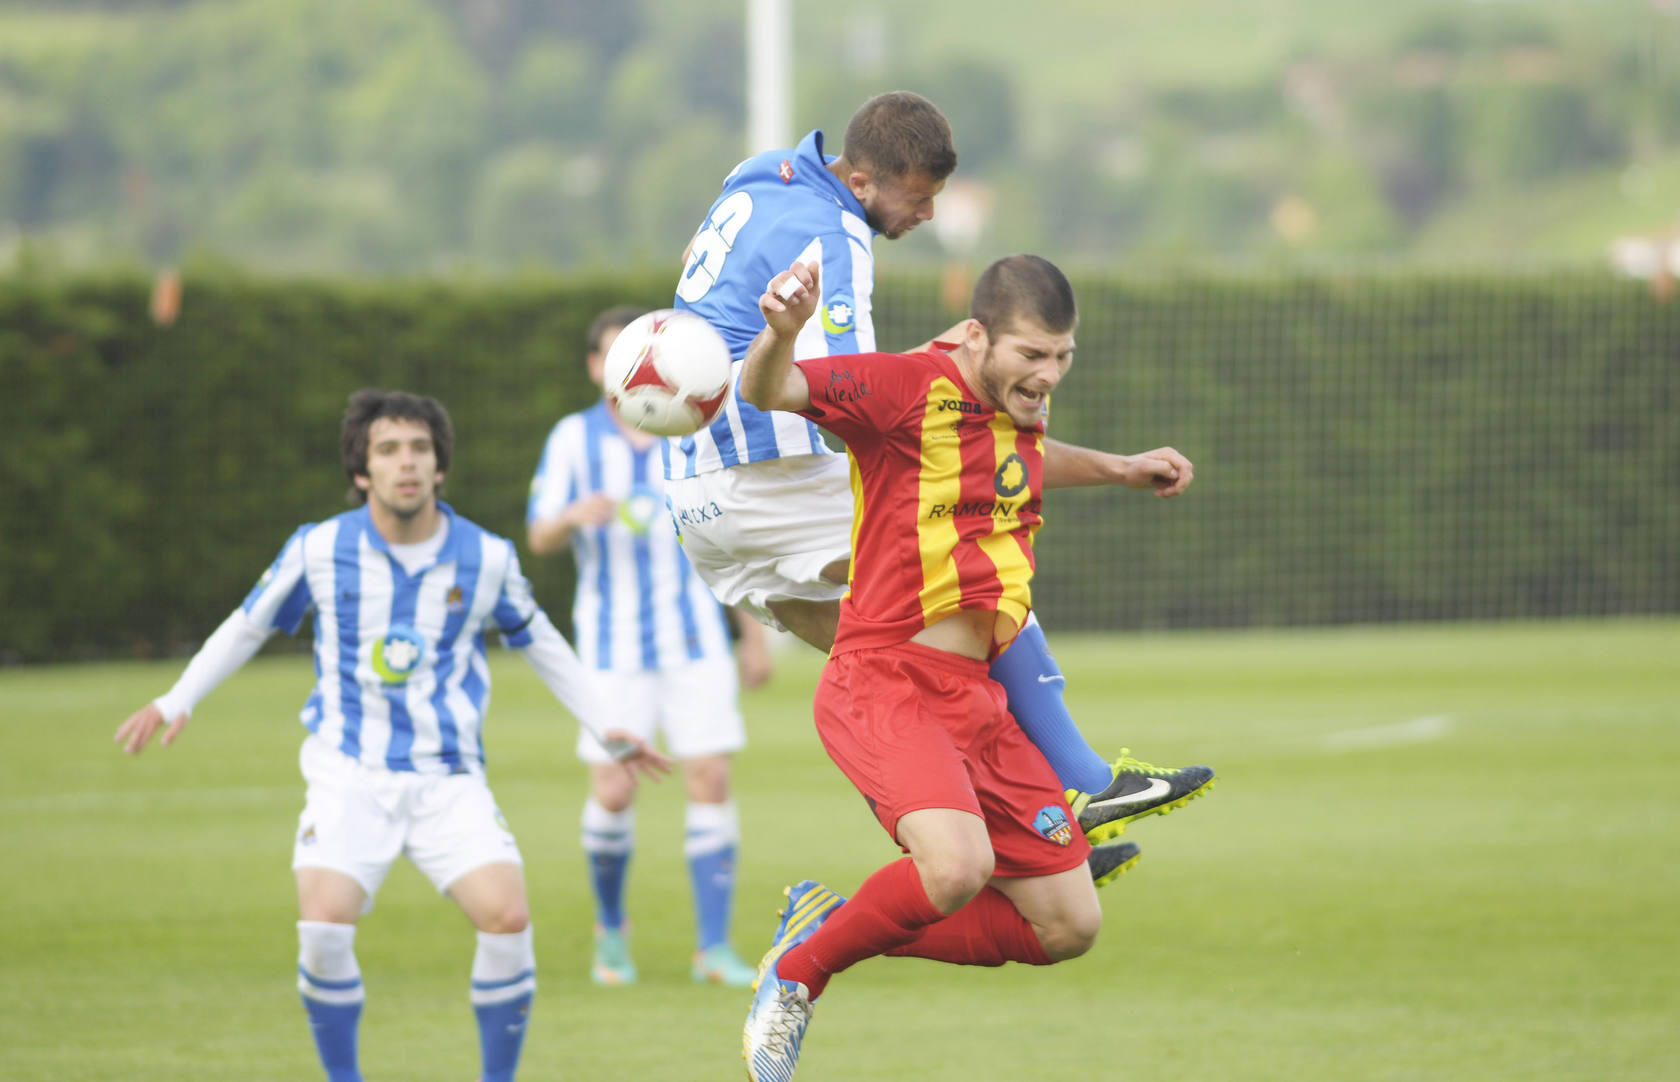 El Sanse cae ante el Lleida Esportiu